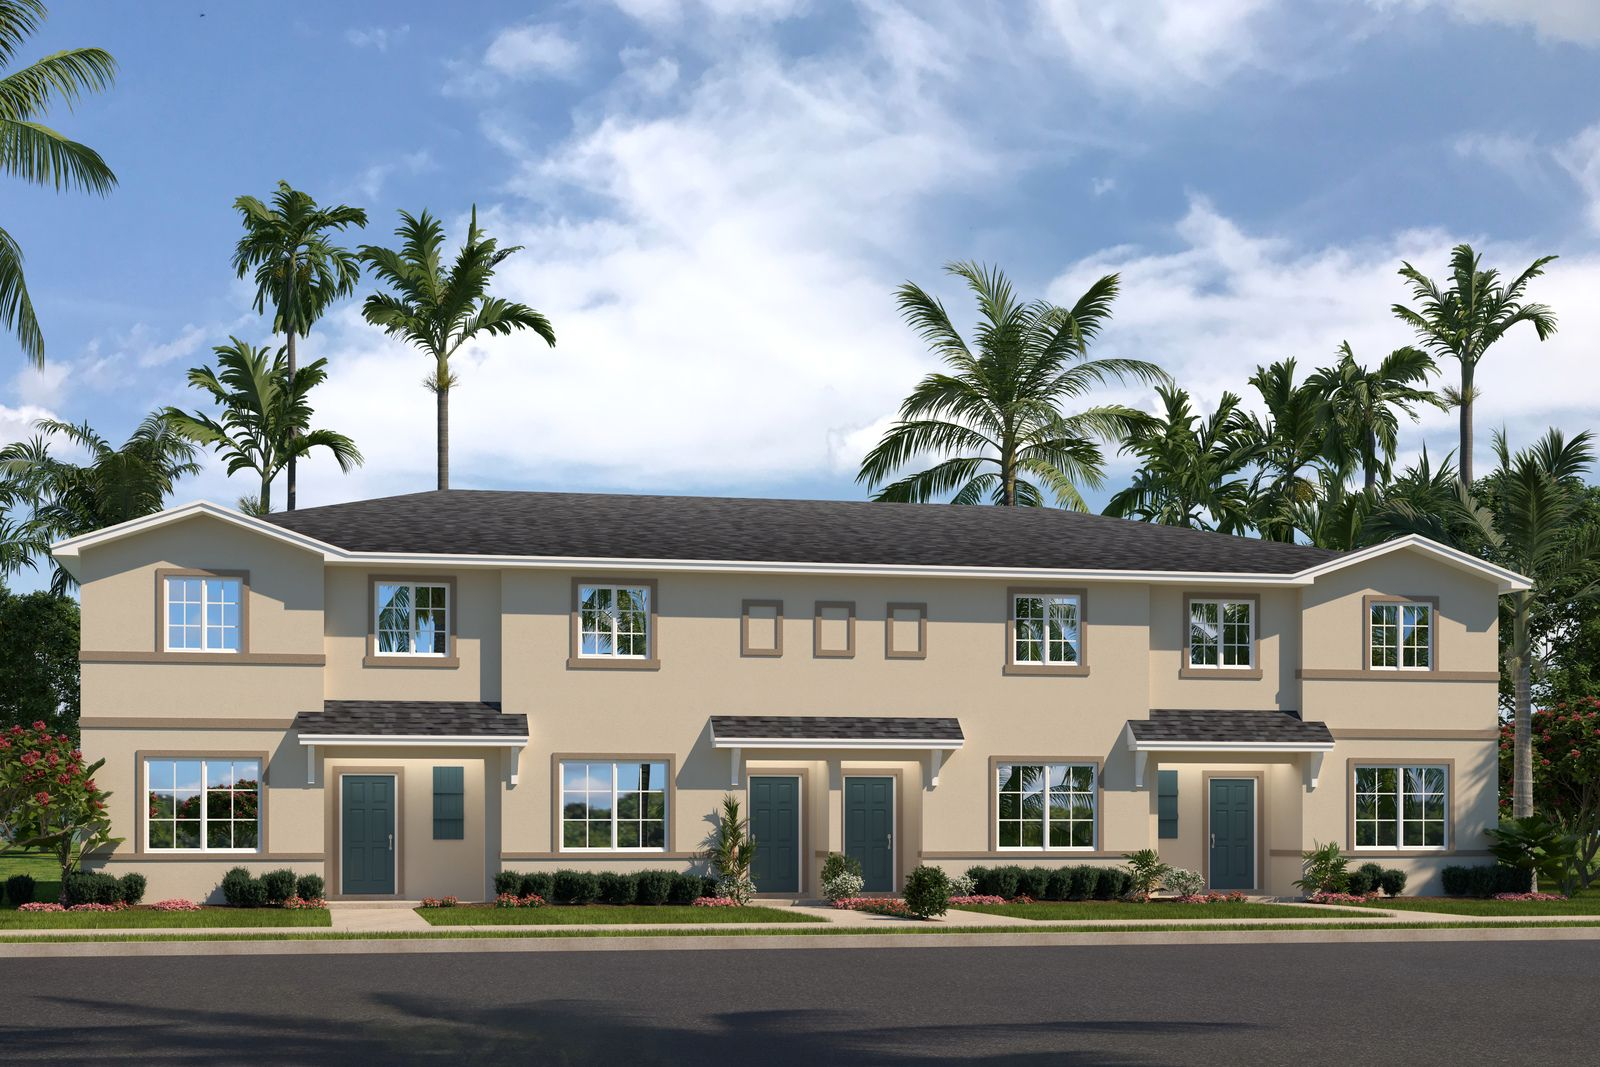 TOWNHOMES AT MAGNOLIA SQUARE IN FORT PIERCE:Spacious, affordable townhomes just minutes from downtown. Close to shopping & dining, I-95 & US 1. From upper $100s.Join our VIP List today!